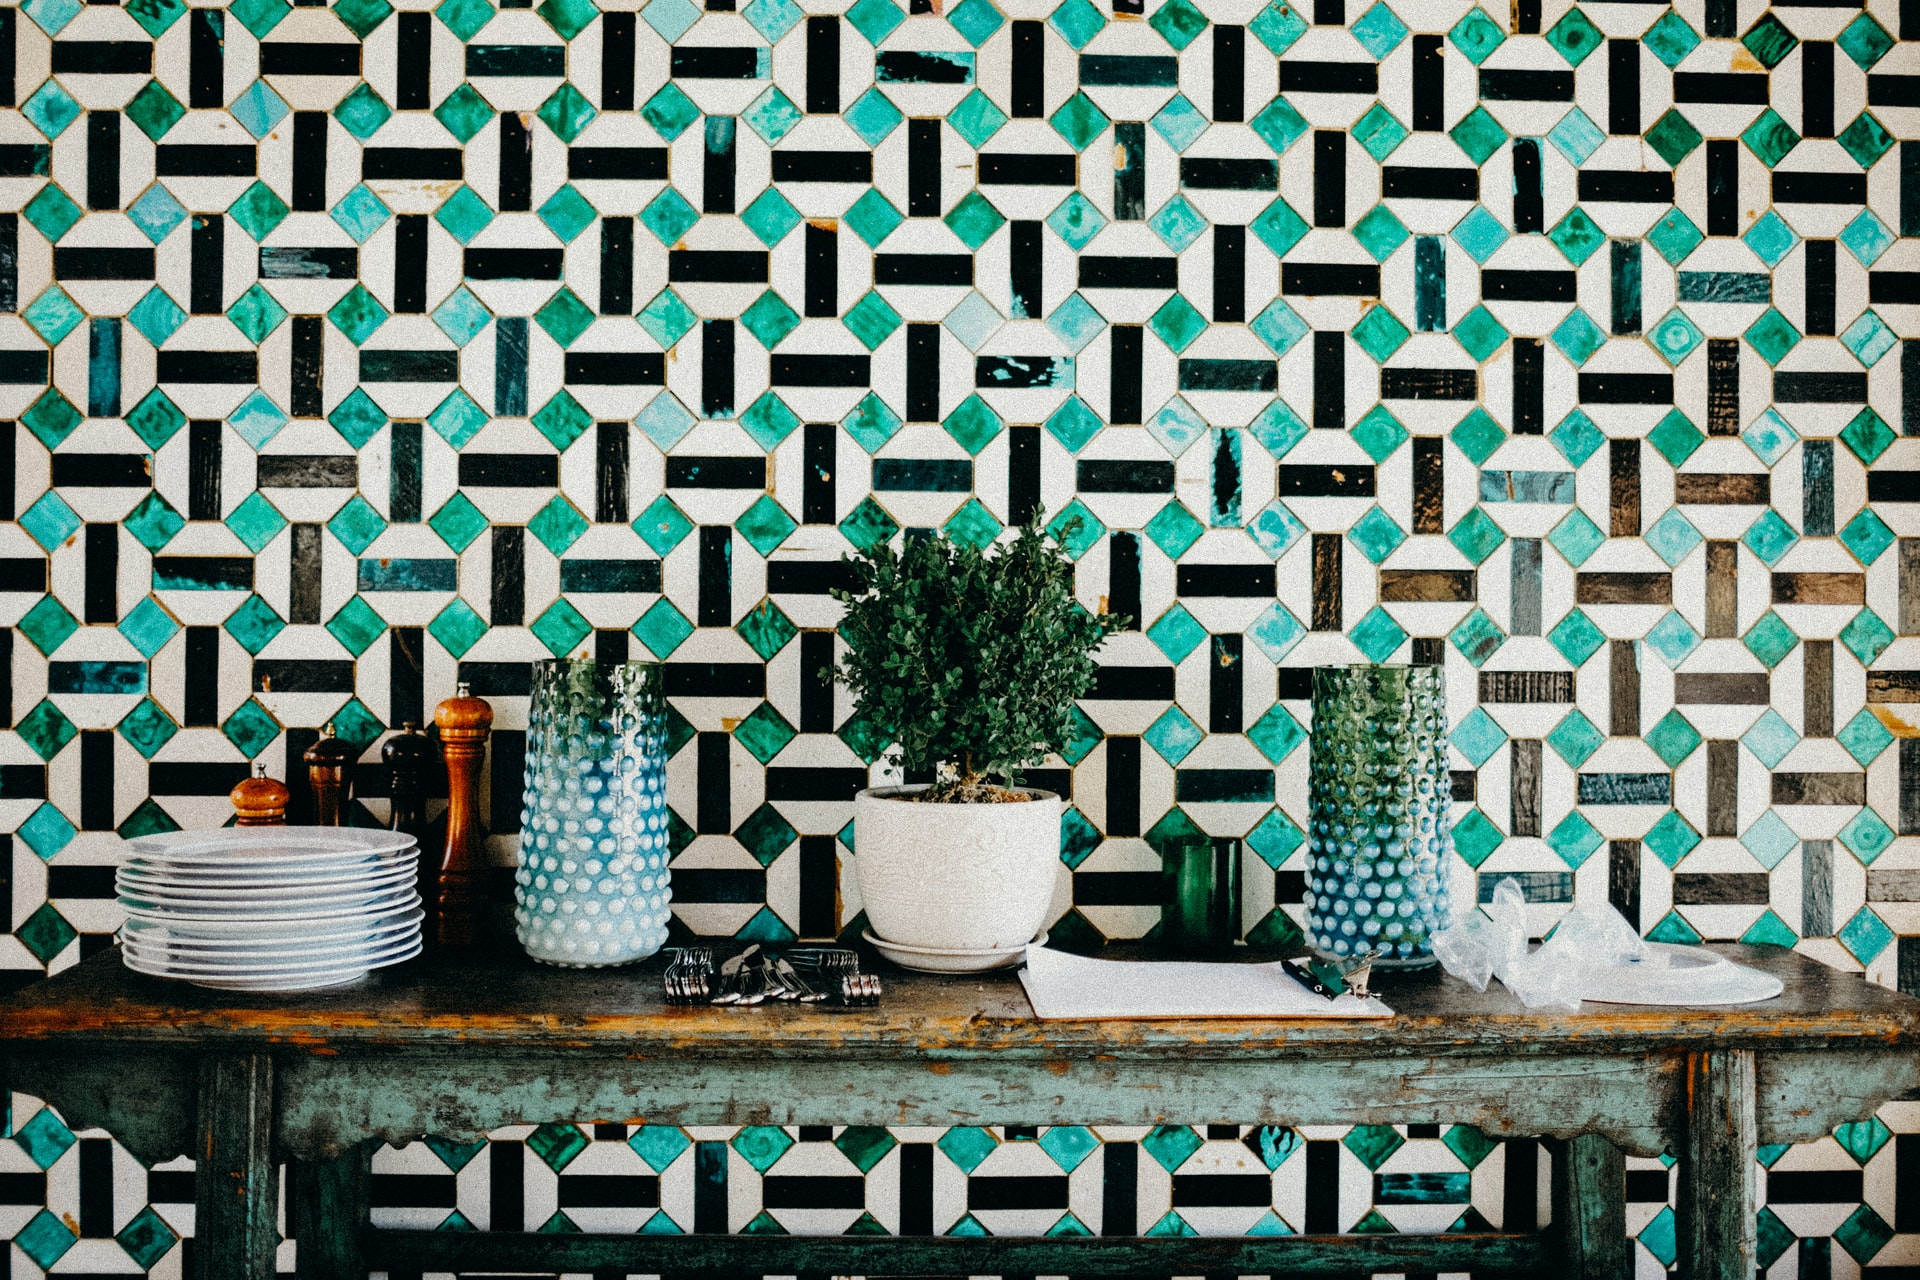 Geometric patterns with mood-boosting colors